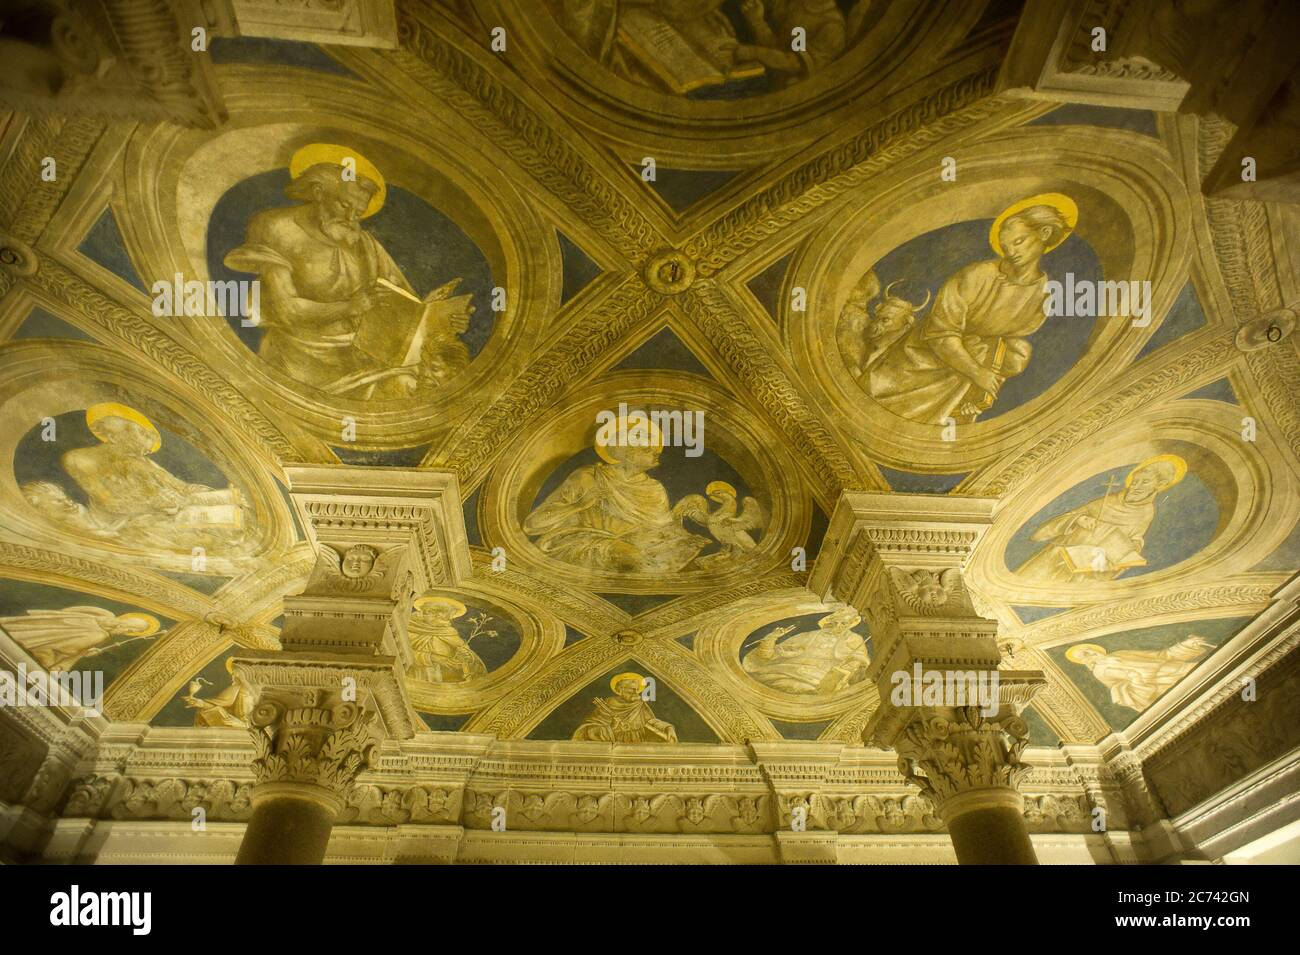 Italy, Basilicata, Acerenza, the Cathedral of Acerenza, dedicated to Santa Maria Assunta and San Canio Bishop in the Romanesque-Gothic style of the 13th chentury ad. Ferilli crypt Stock Photo